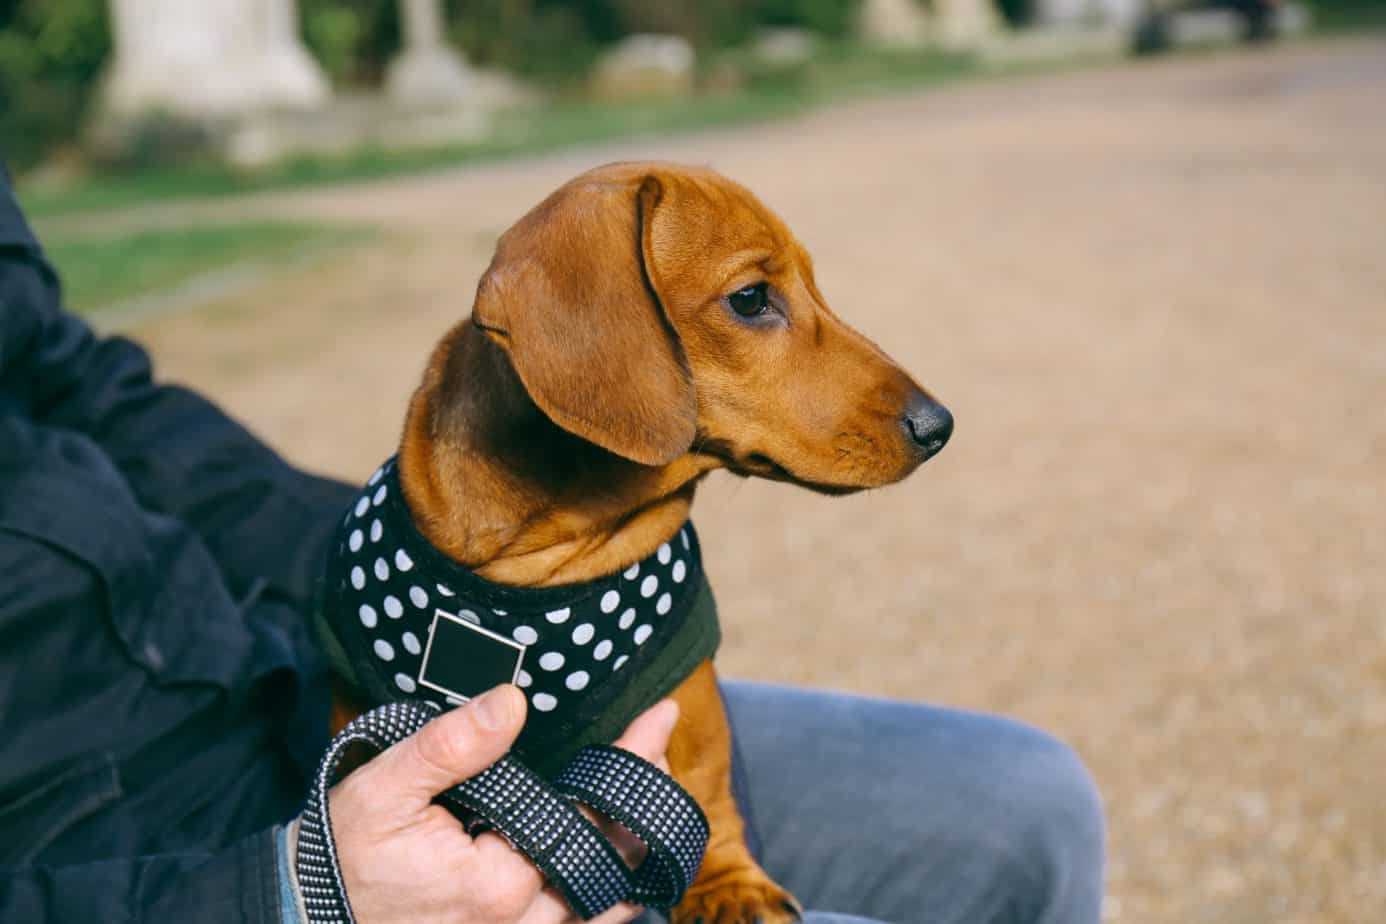 Dachshund wears a harness.